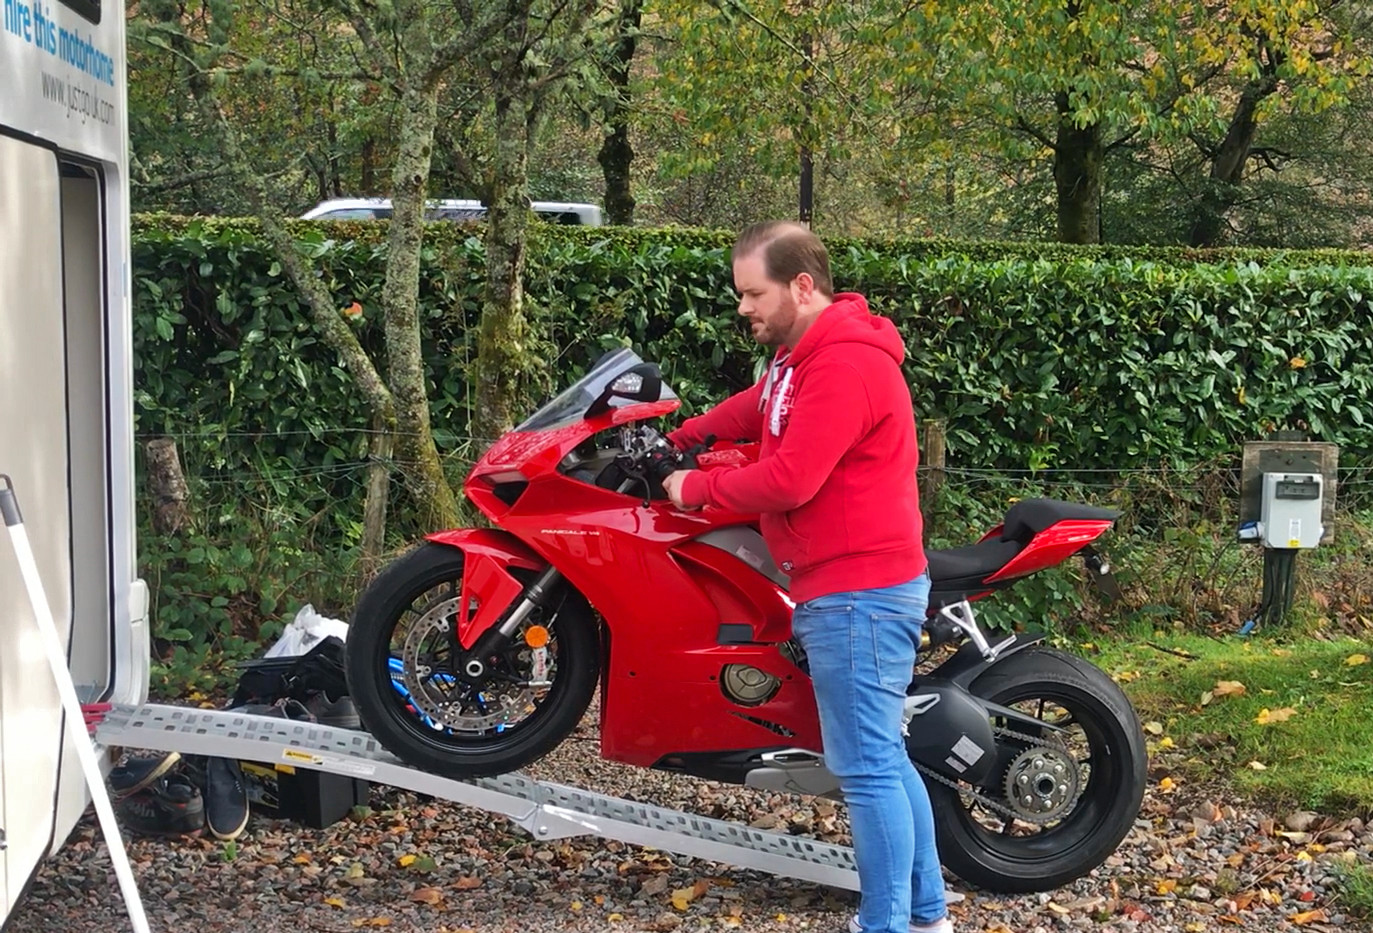 ducati transported in back of motorhome